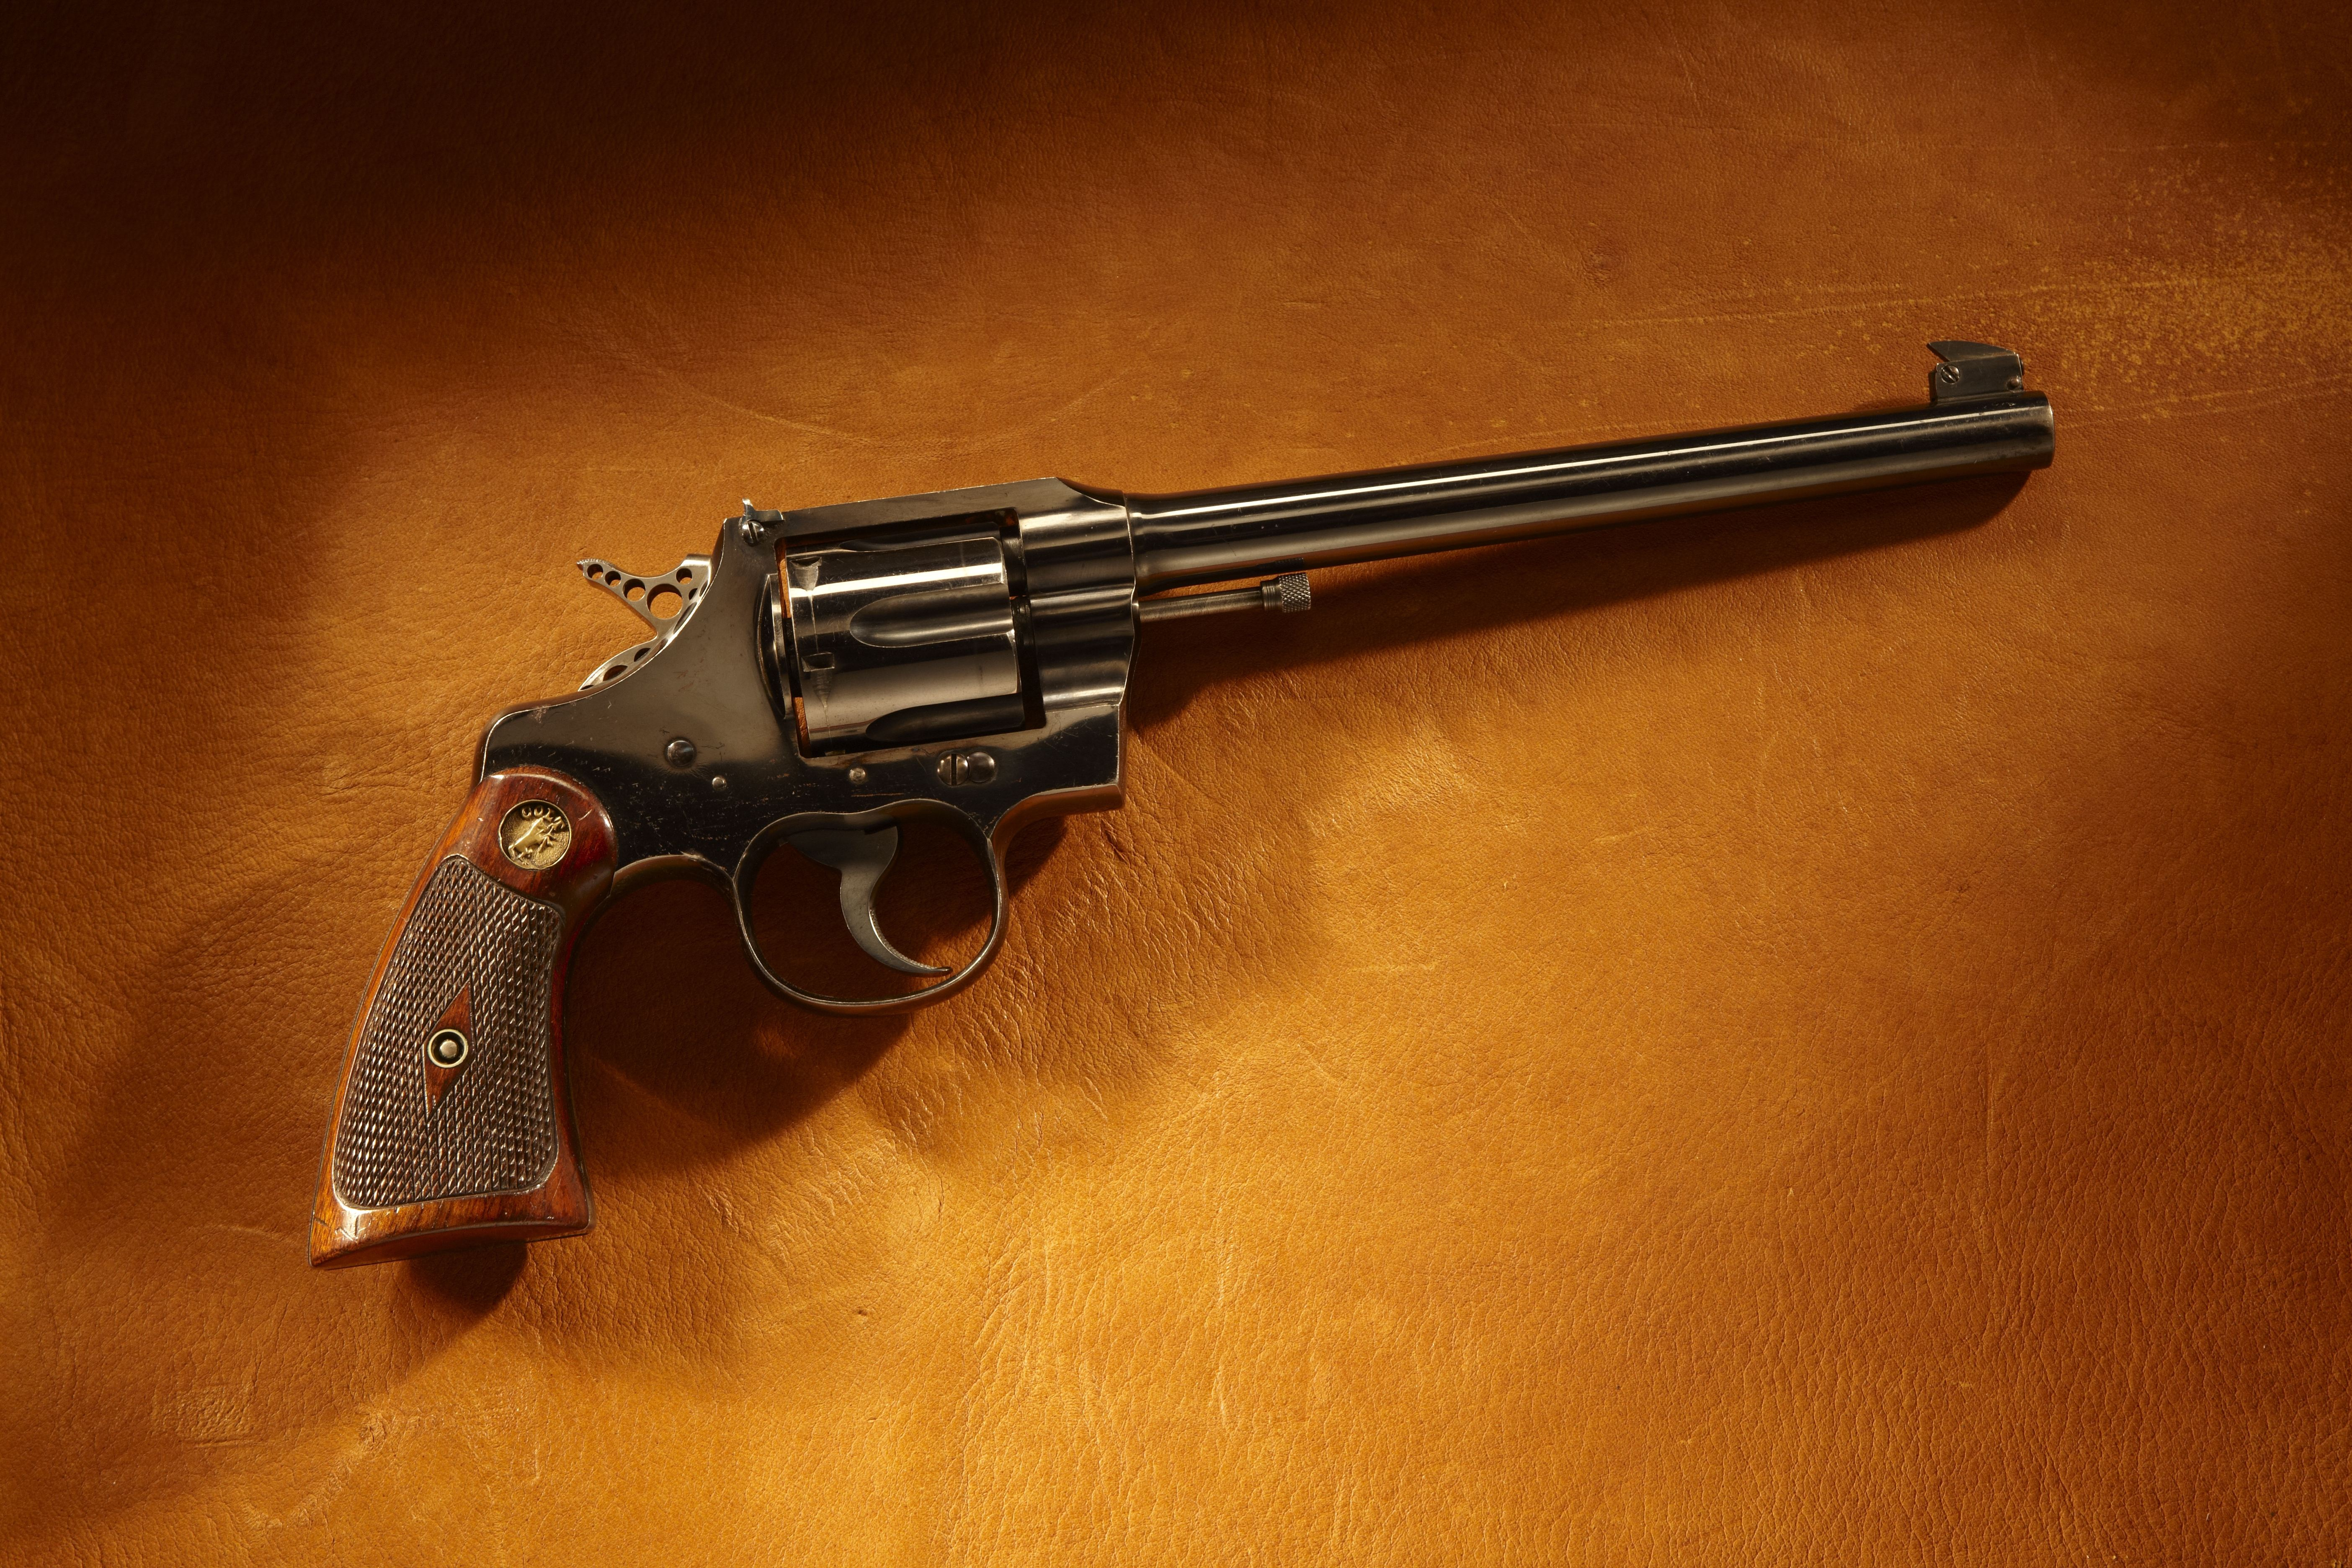 A.P. Lane's Olympic Gold Colt Revolver